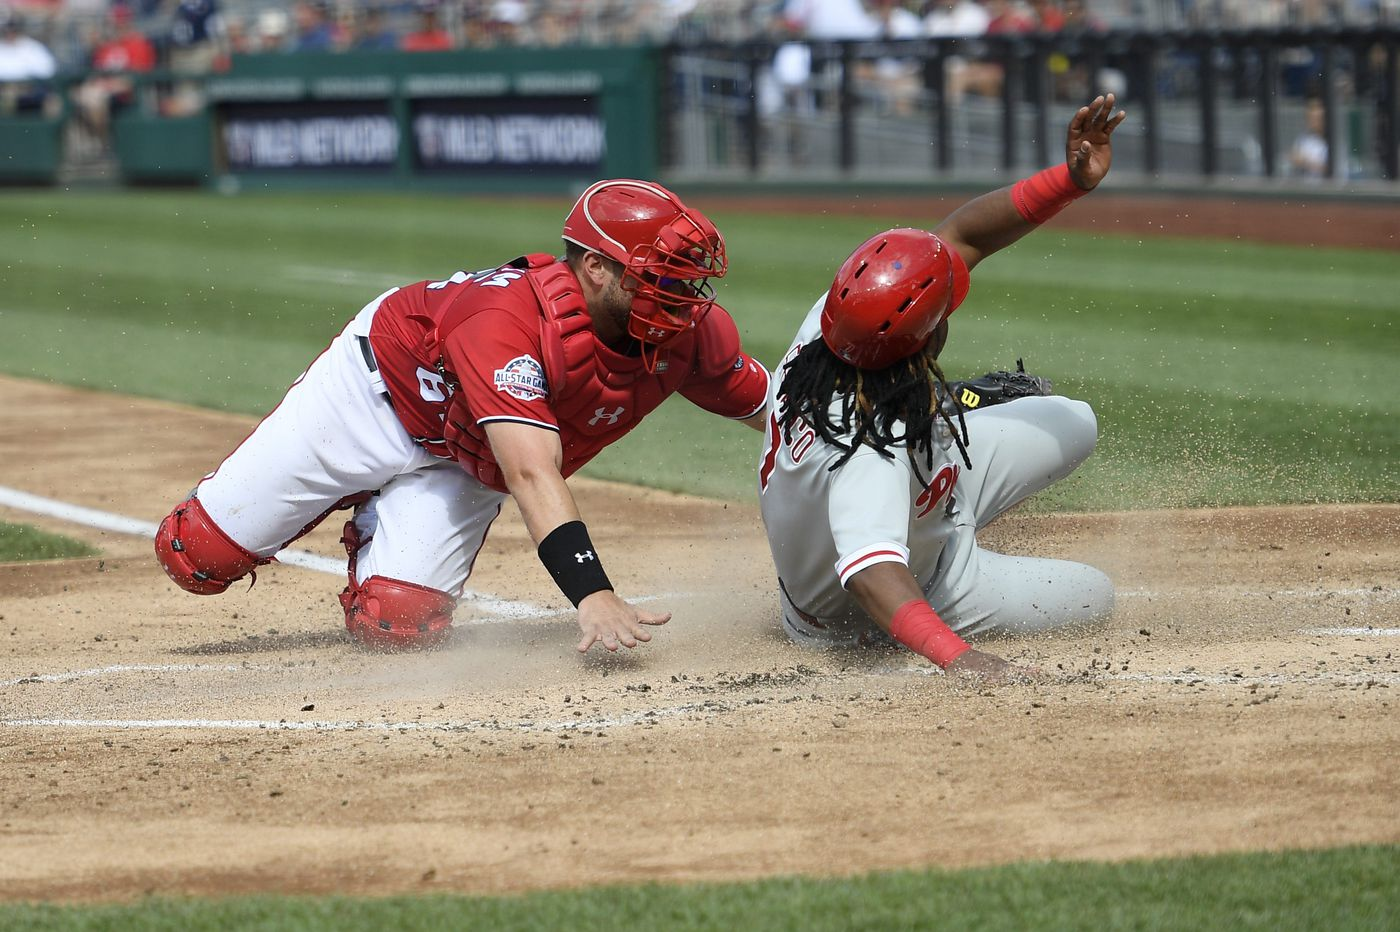 Maikel Franco's four-hit game propels Phillies win over Nationals